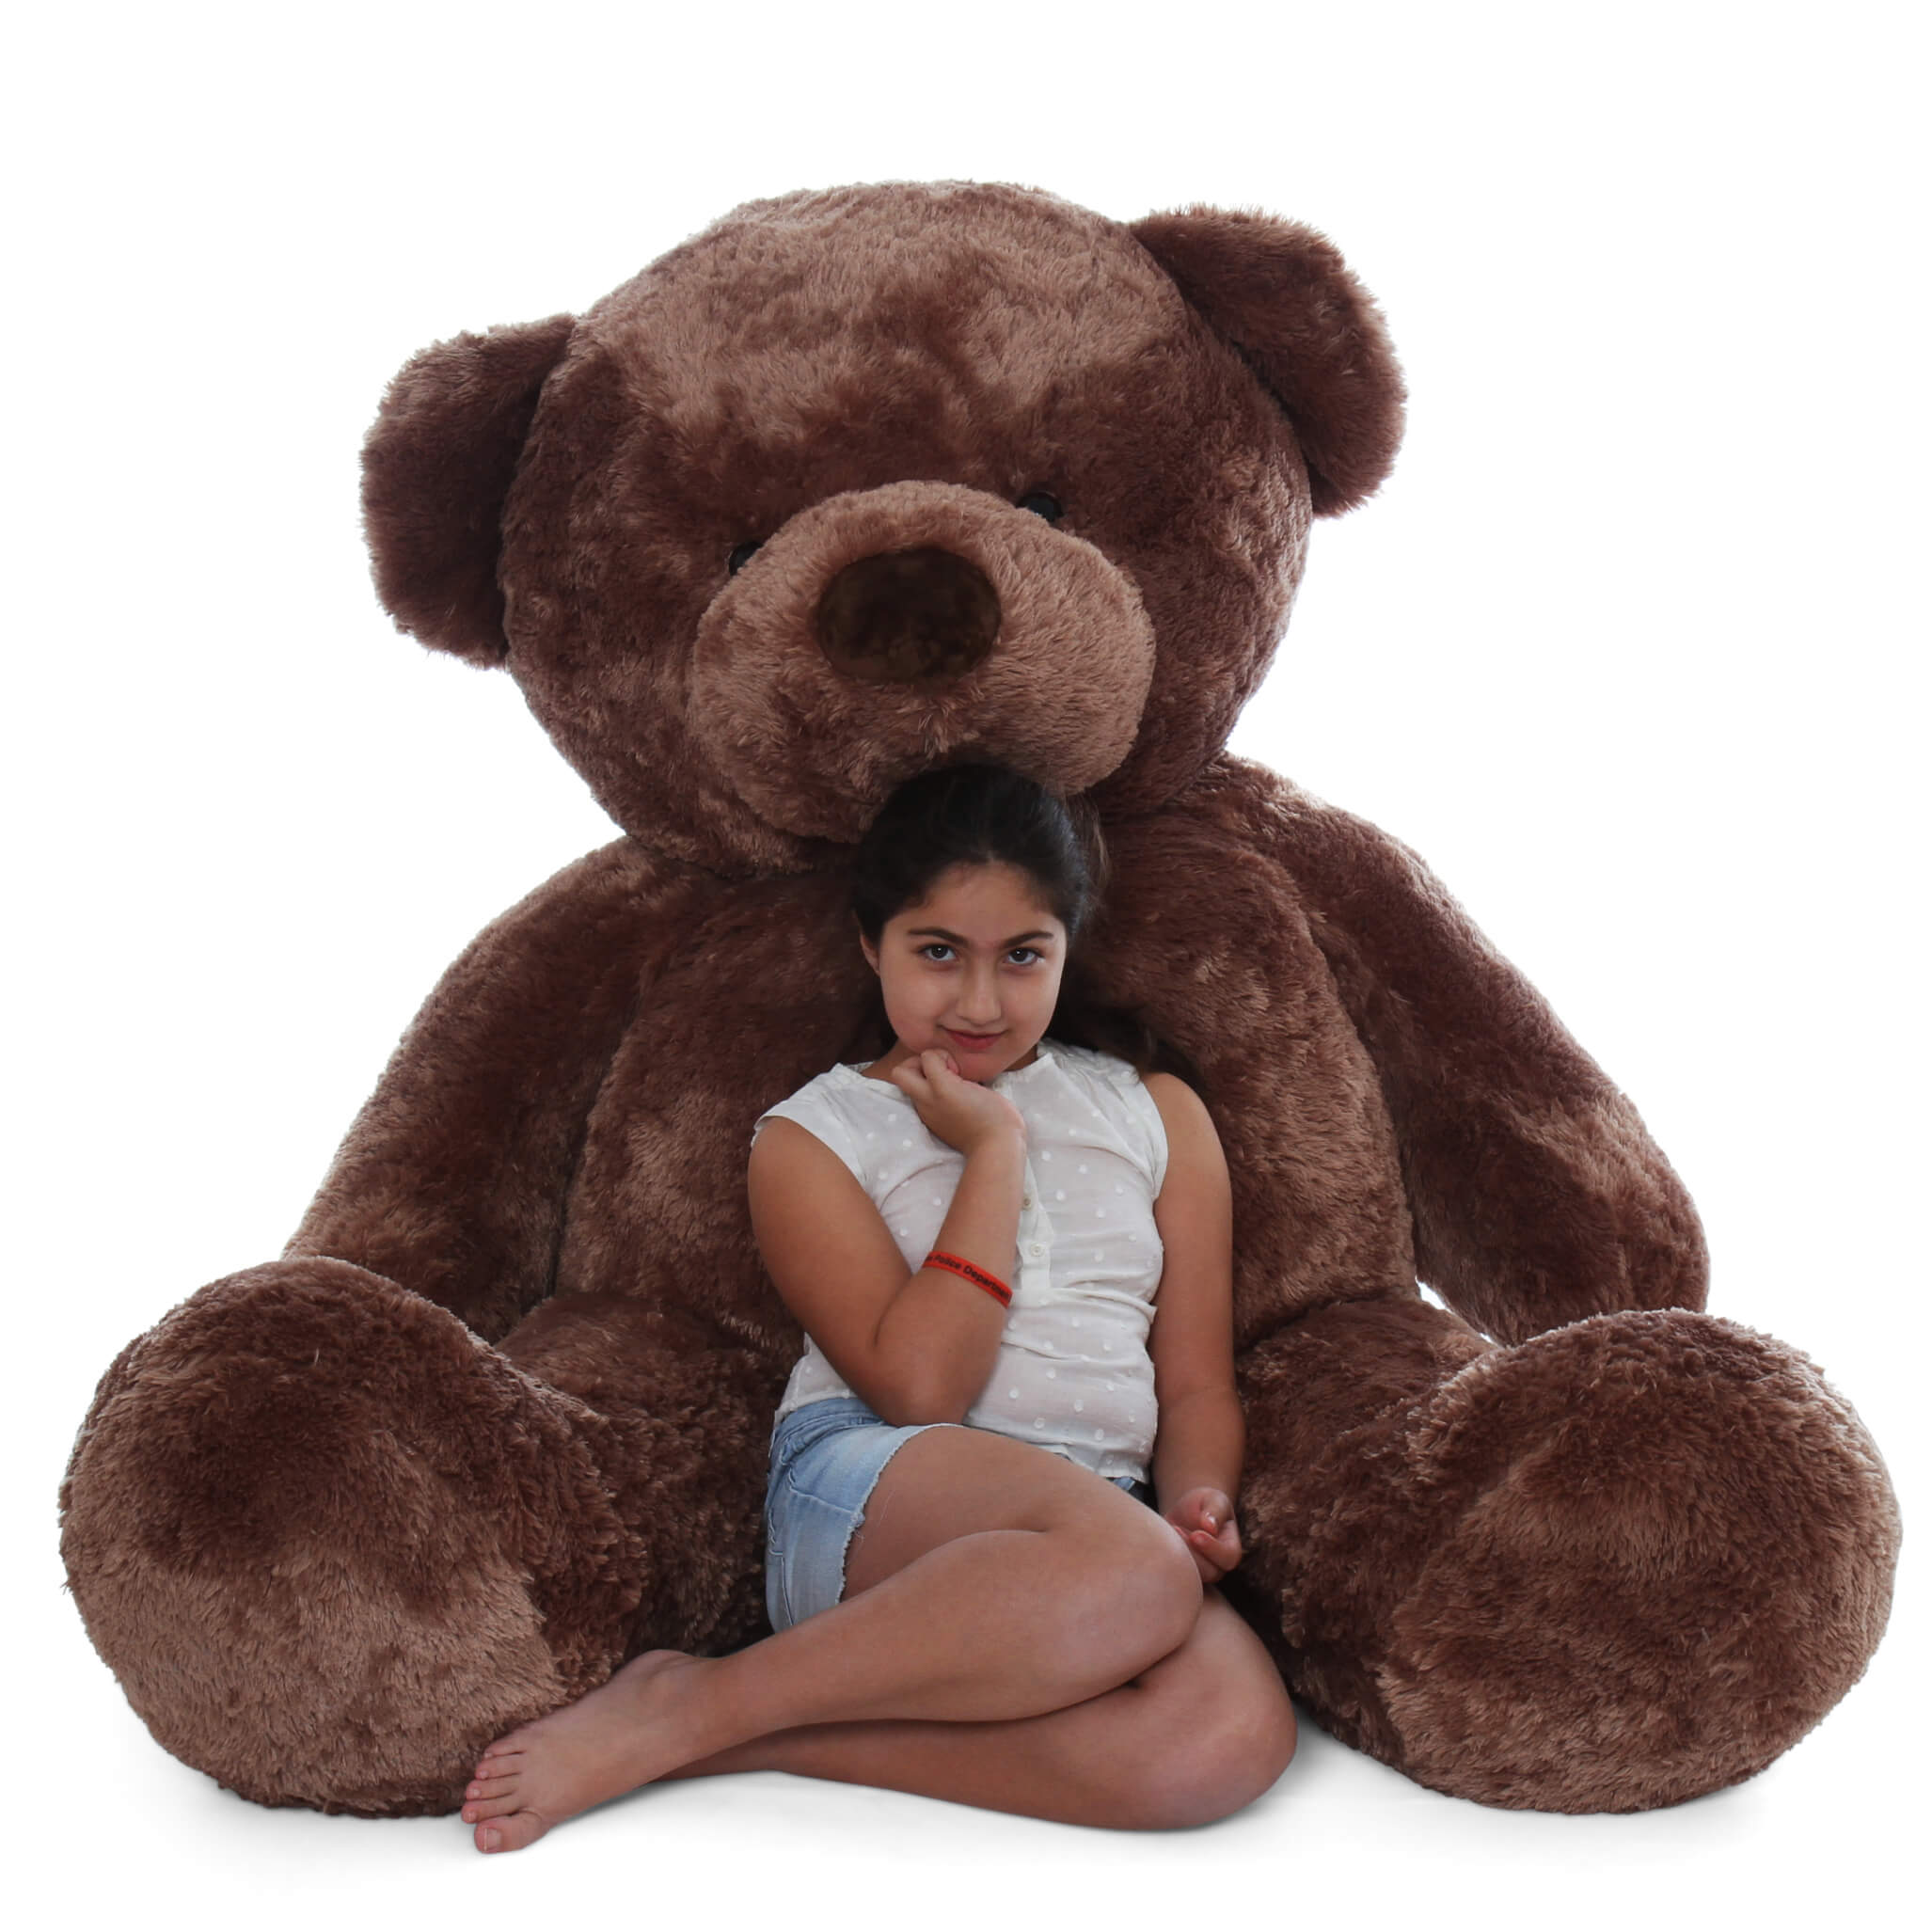 big-mocha-teddy-best-gift-bear-big-chubs-6ft-1.jpg